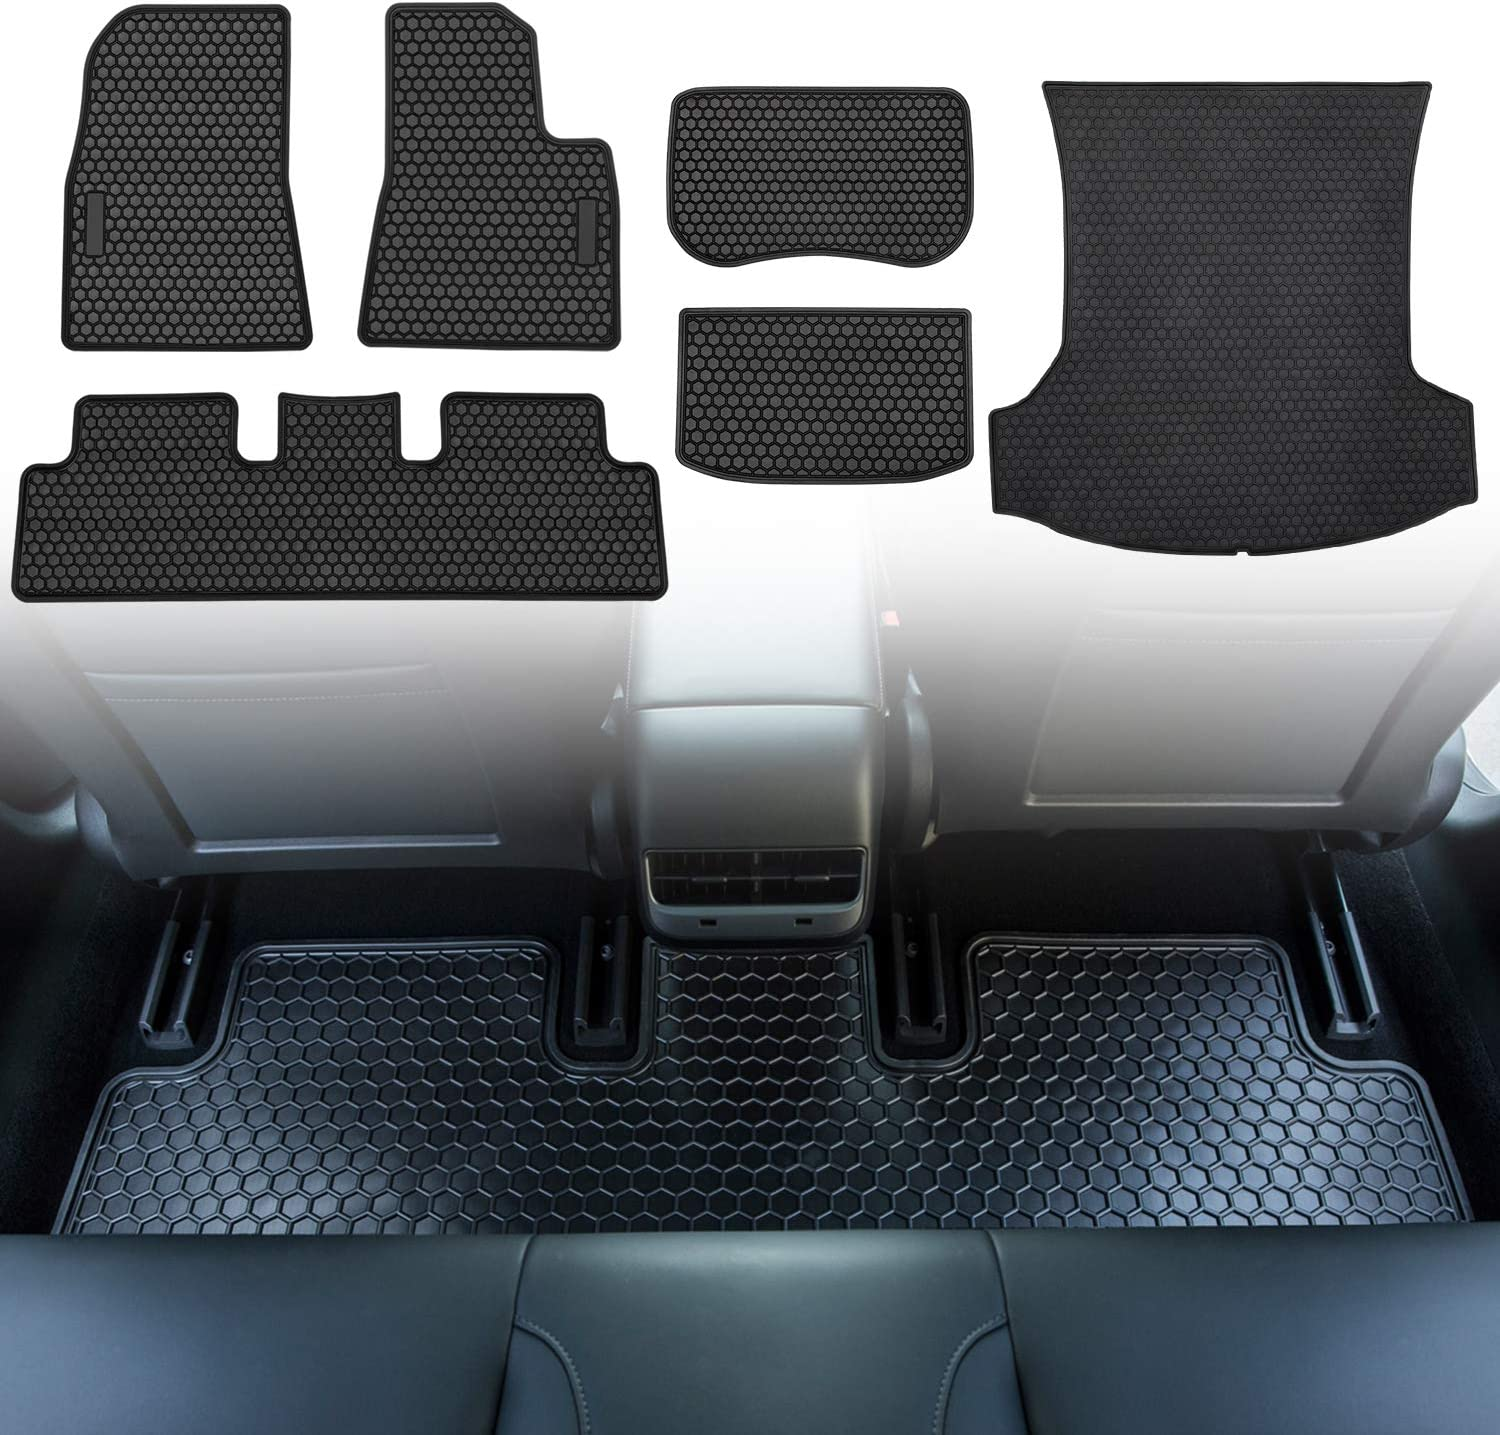 Custom Fit 6 pcs Front and Rear Floor Mat /& Cargo Liners All-Weather Vehicle Protector Rubber For Tesla Model 3 2017-2019